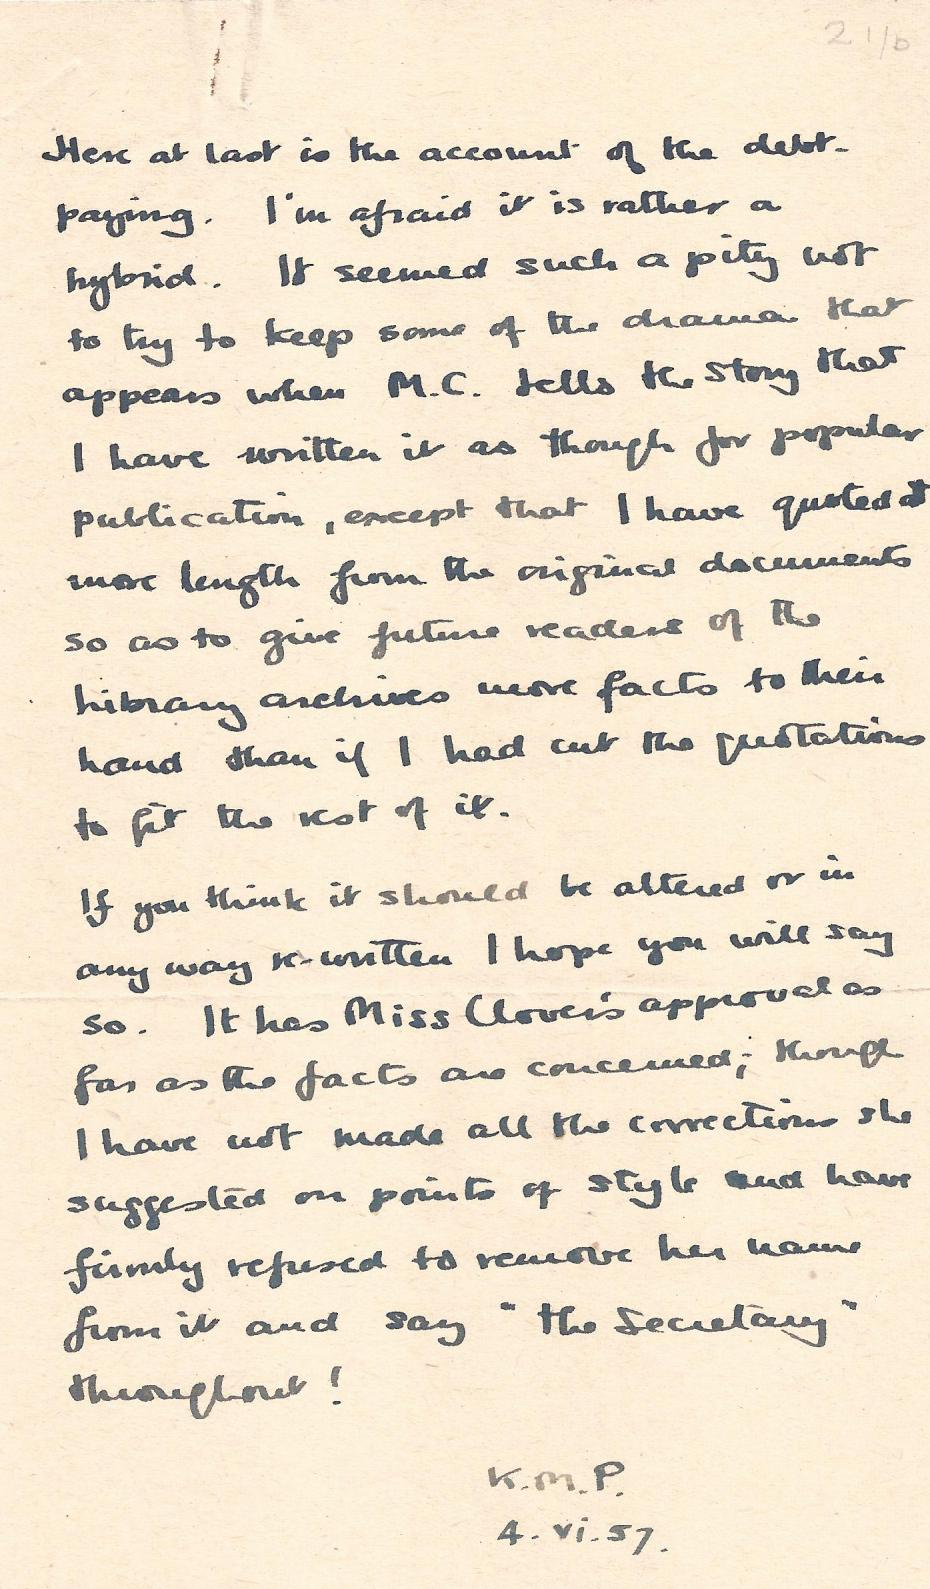 A note written by Kathleen Peace explaining how she wanted to 'keep some of the drama', 1957 (archive reference: GCAR 2/6/12pt).